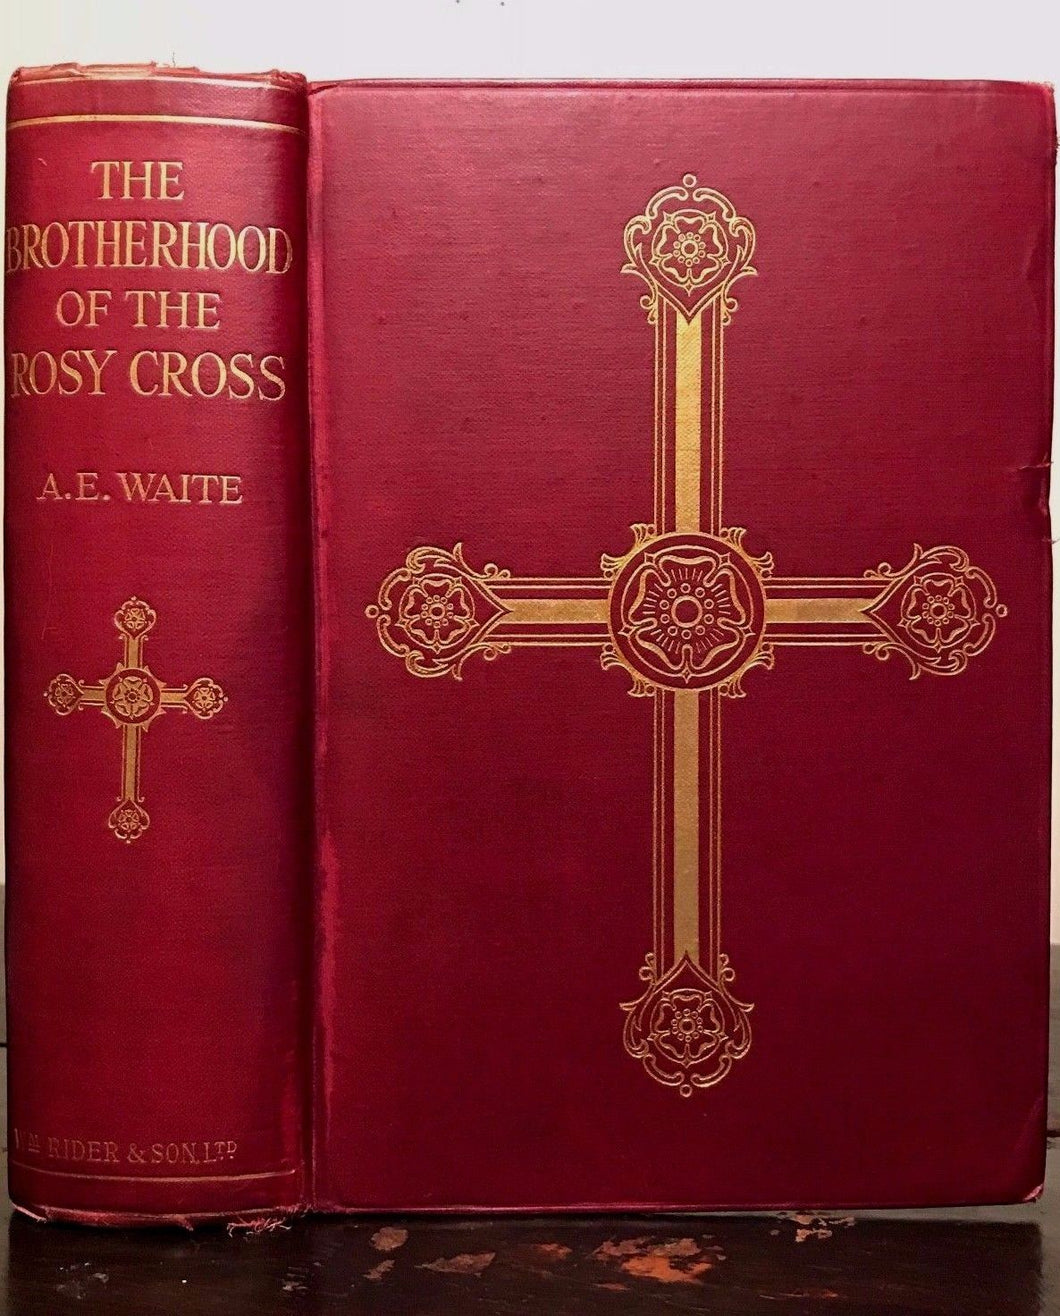 AE WAITE - BROTHERHOOD OF THE ROSY CROSS, 1st/1st 1924 ROSICRUCIAN FREEMASONRY